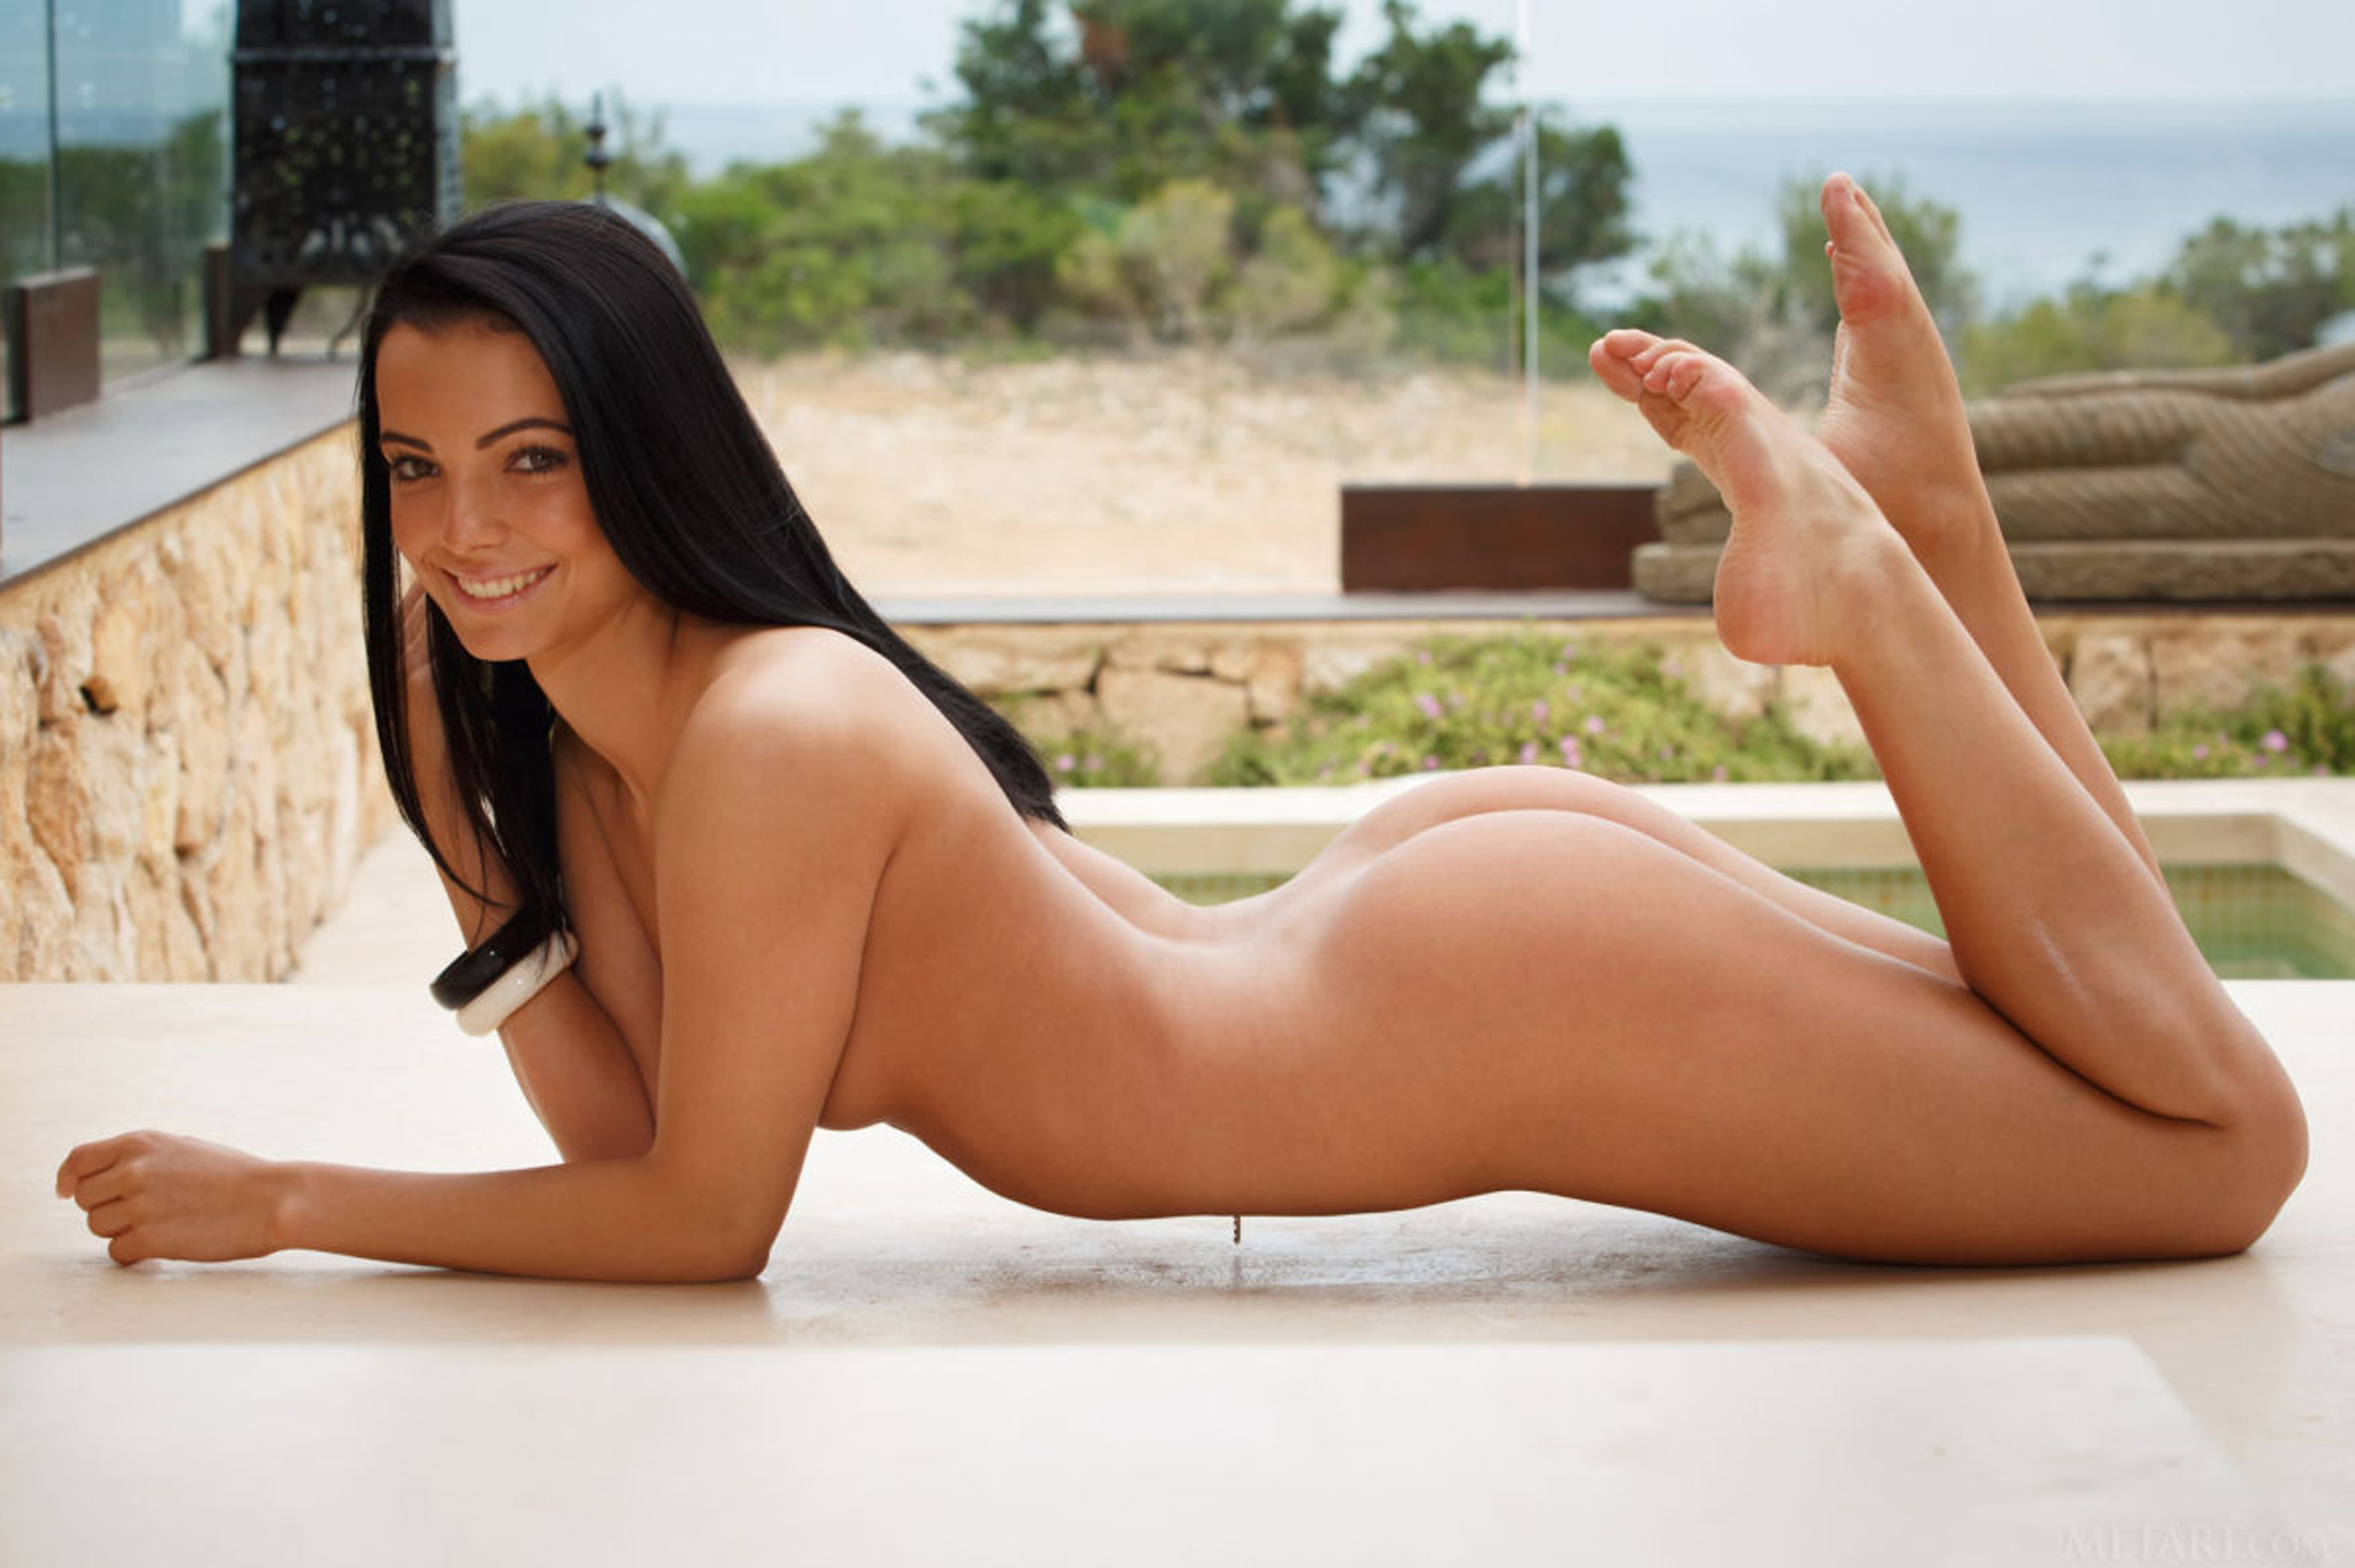 Wallpaper Sapphira A, Nude, Sexy, Hot, Teen, Black Hair -3301